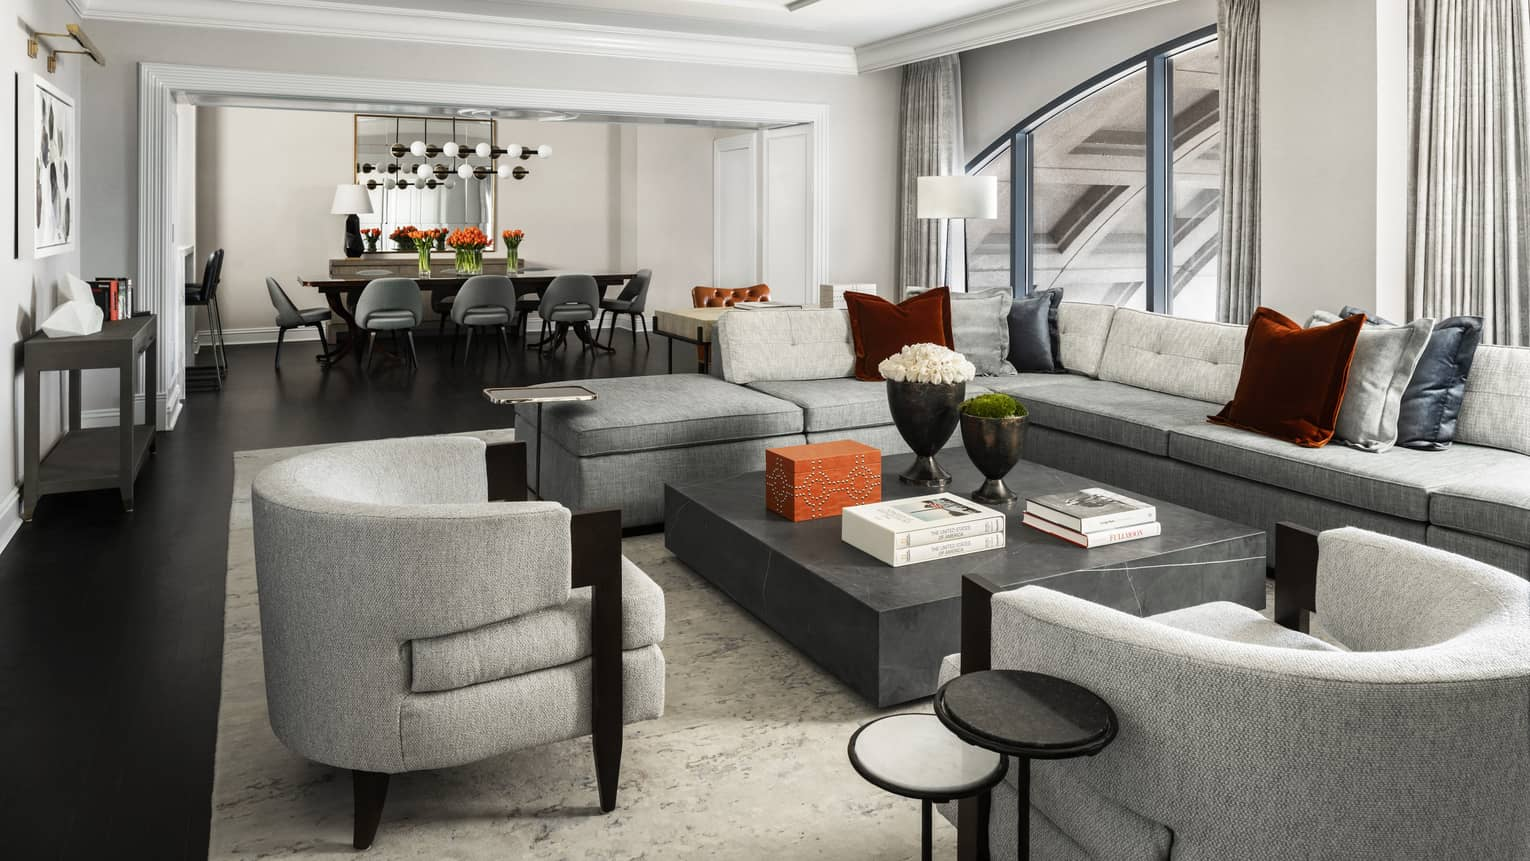 Presidential Suite large seating area with modern grey furniture, dining table